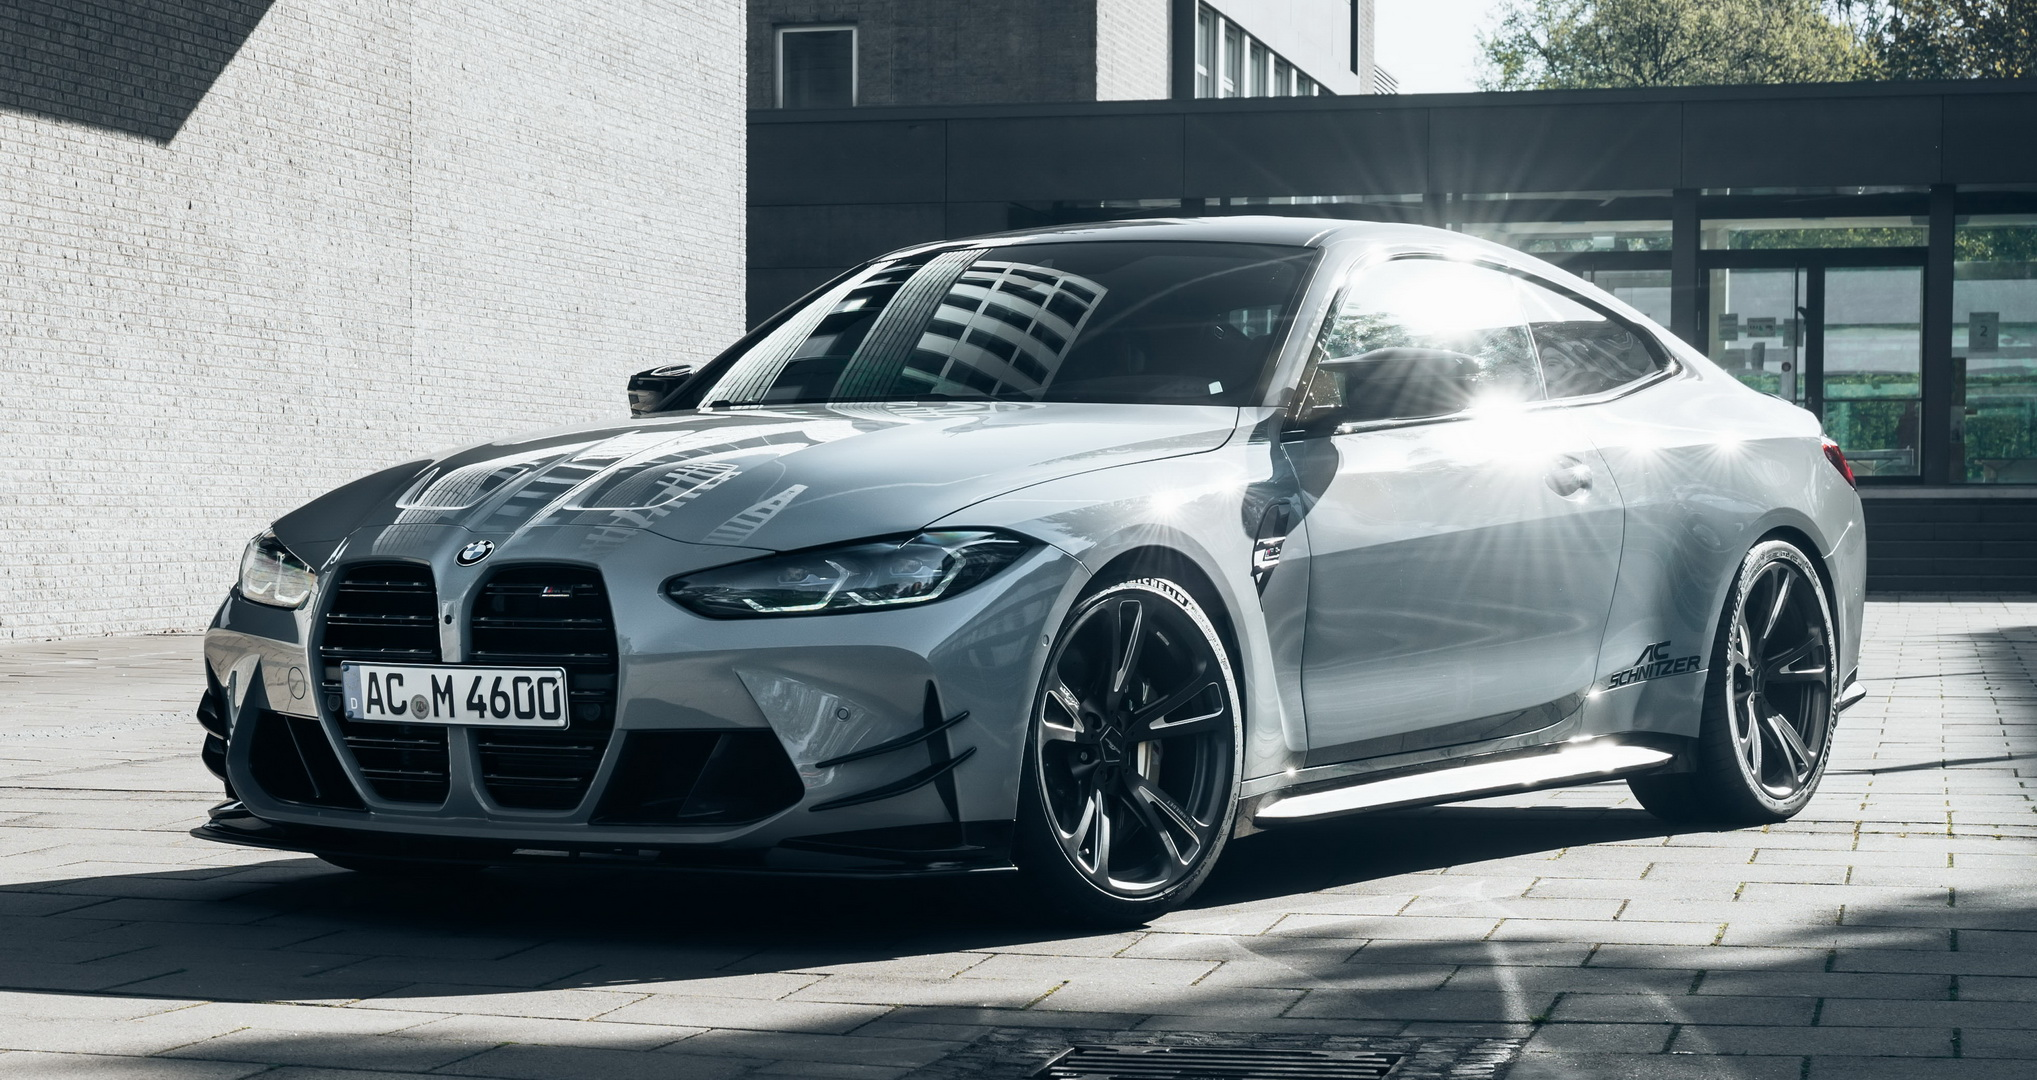 All owners of the 2021 BMW M4 coupe may now choose from a wide range of exterior and interior accessories custom-tailored for it by AC Schnitzer.